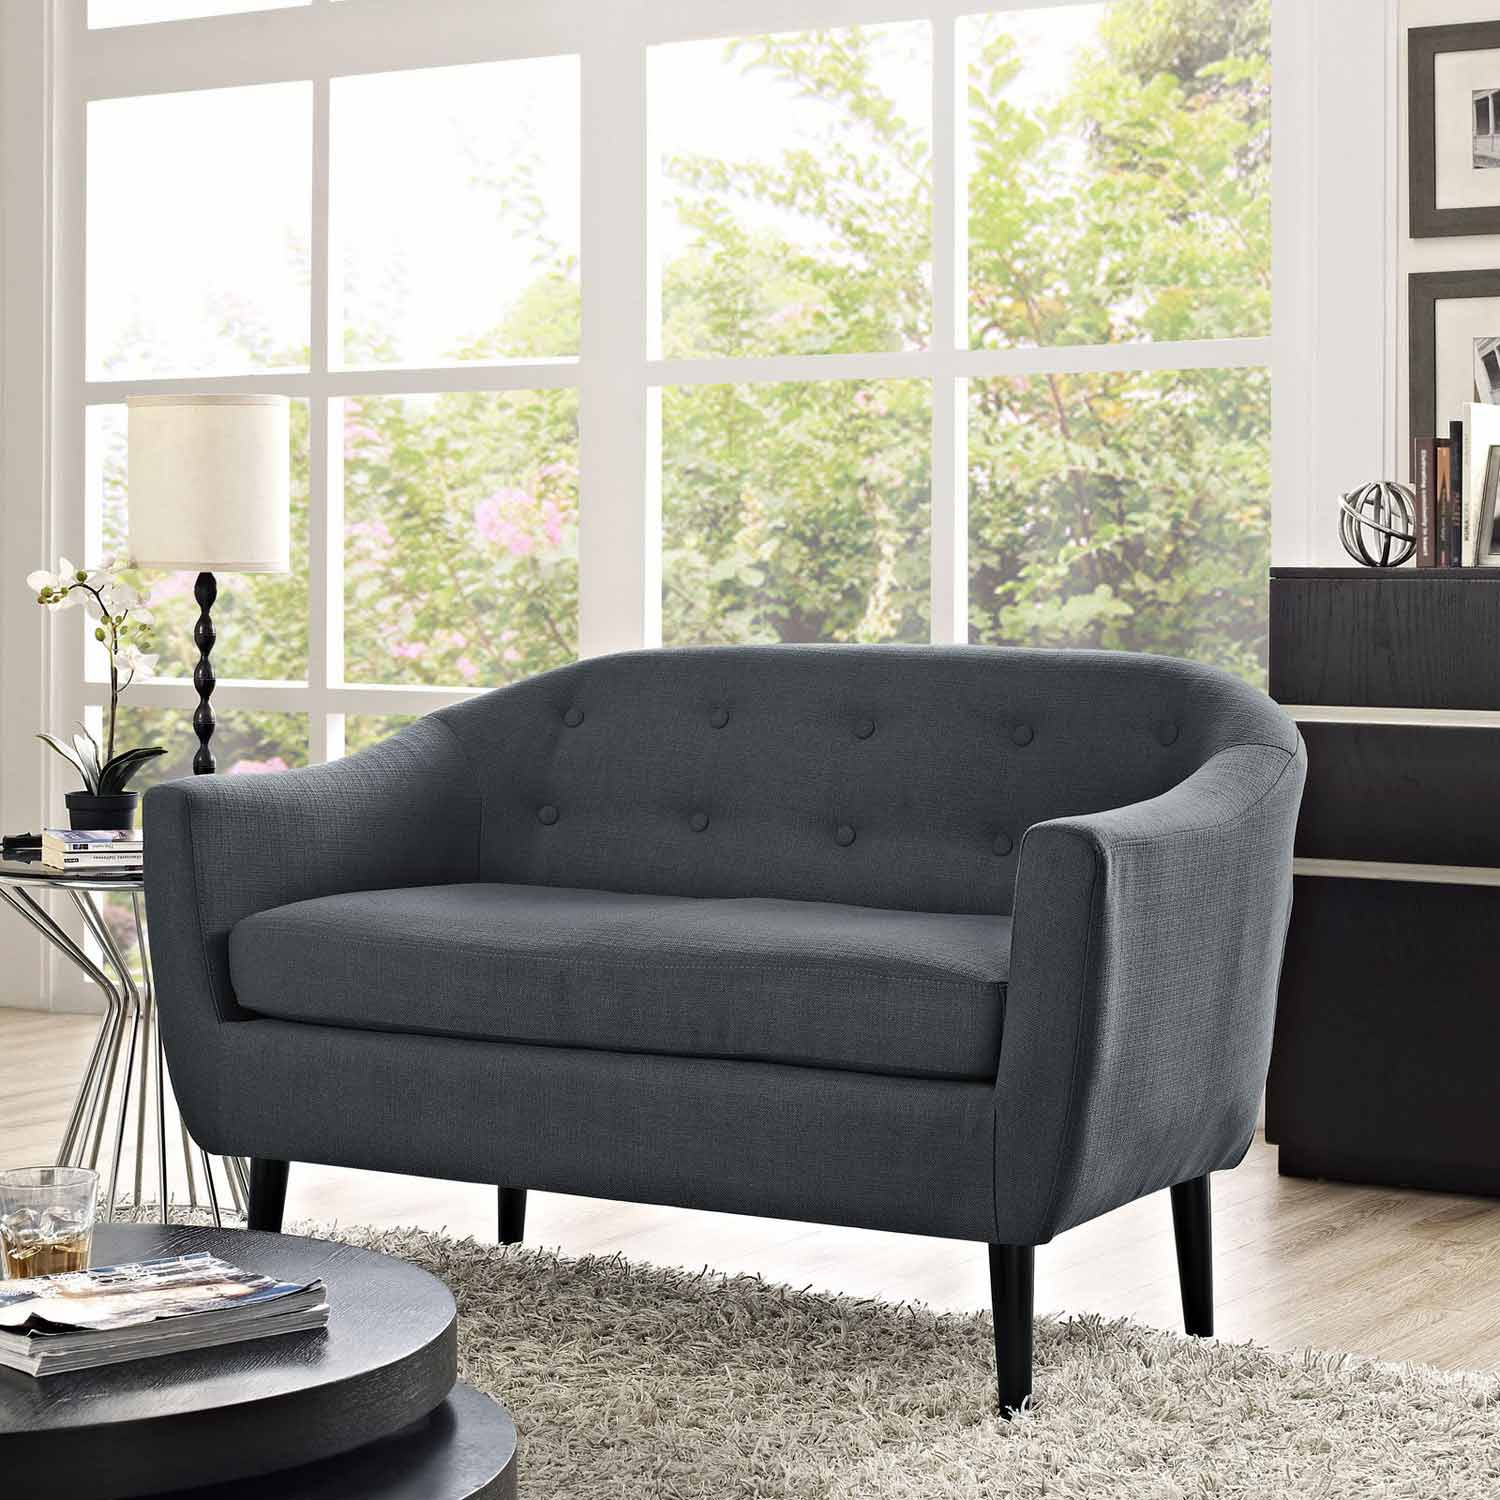 Modway Wit Loveseat - Gray